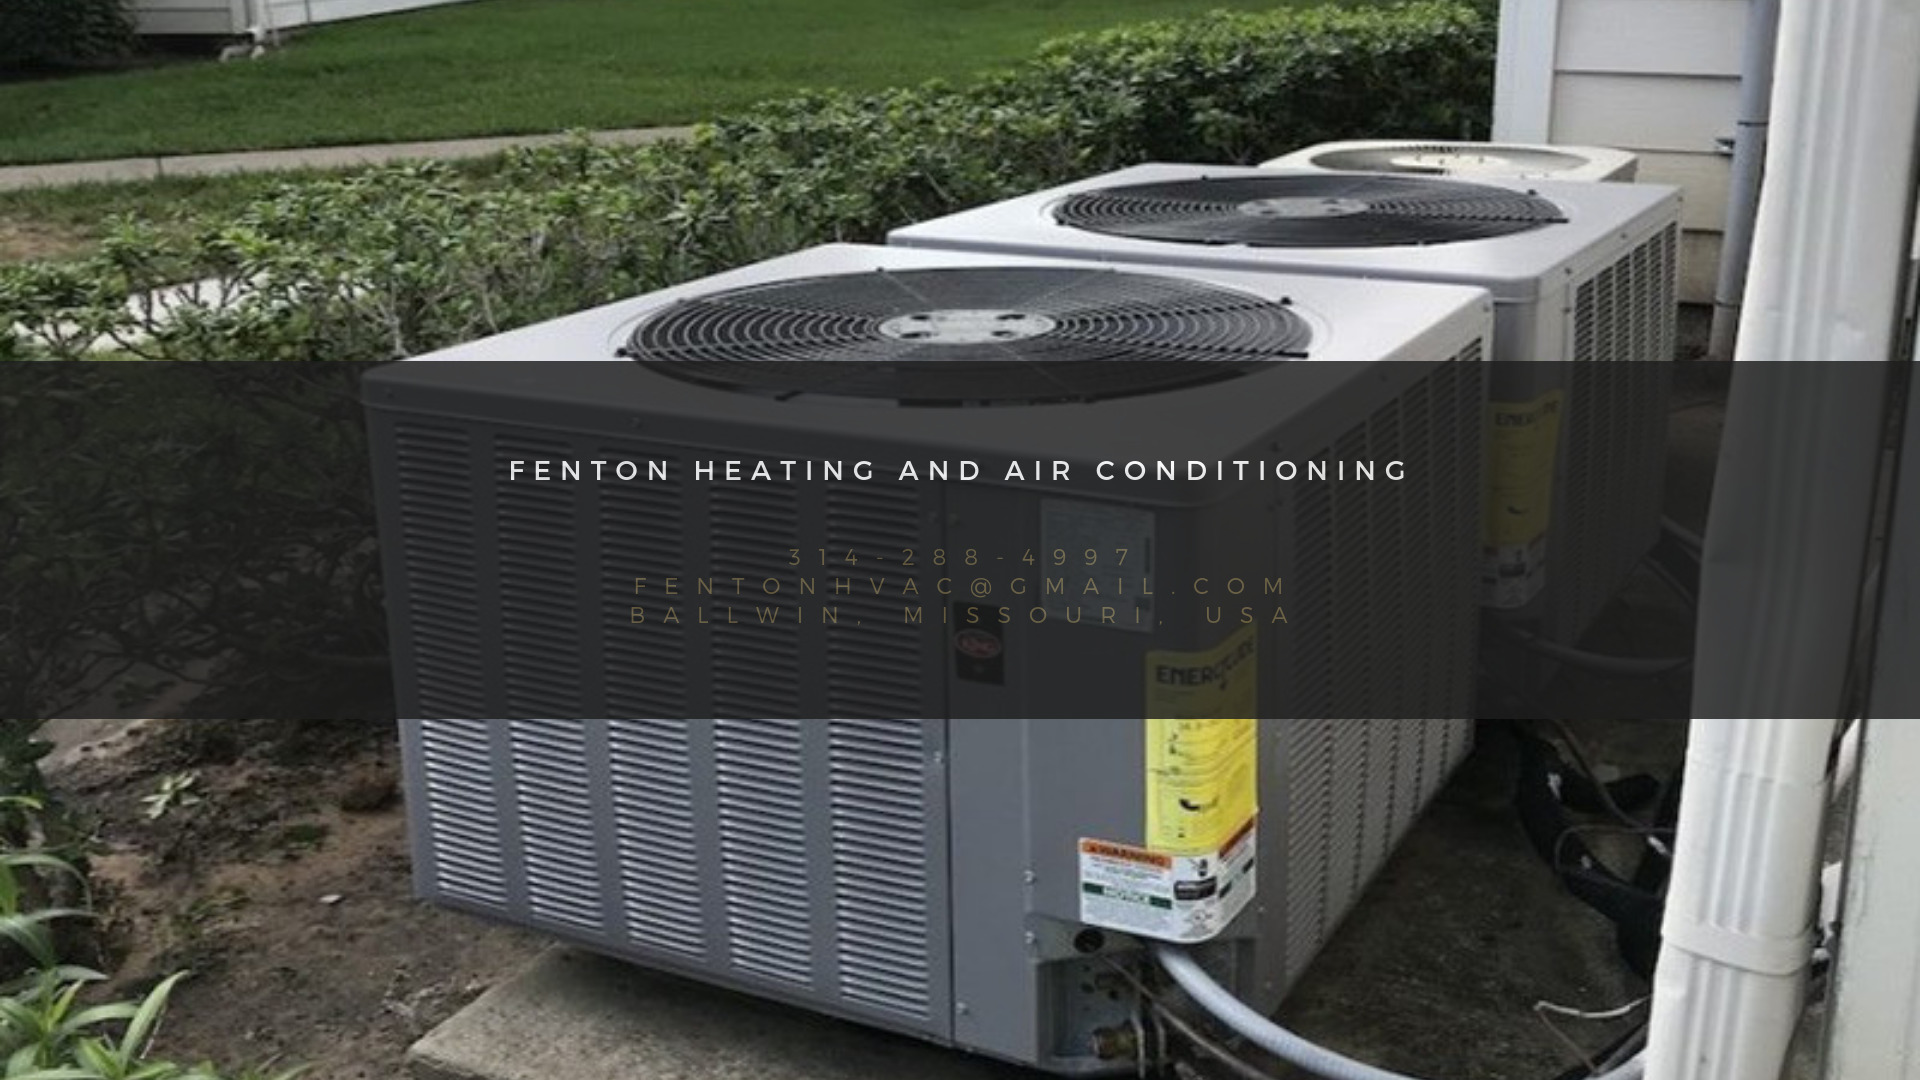 Fenton Residential Air Conditioning Company In Ballwin Mo Started